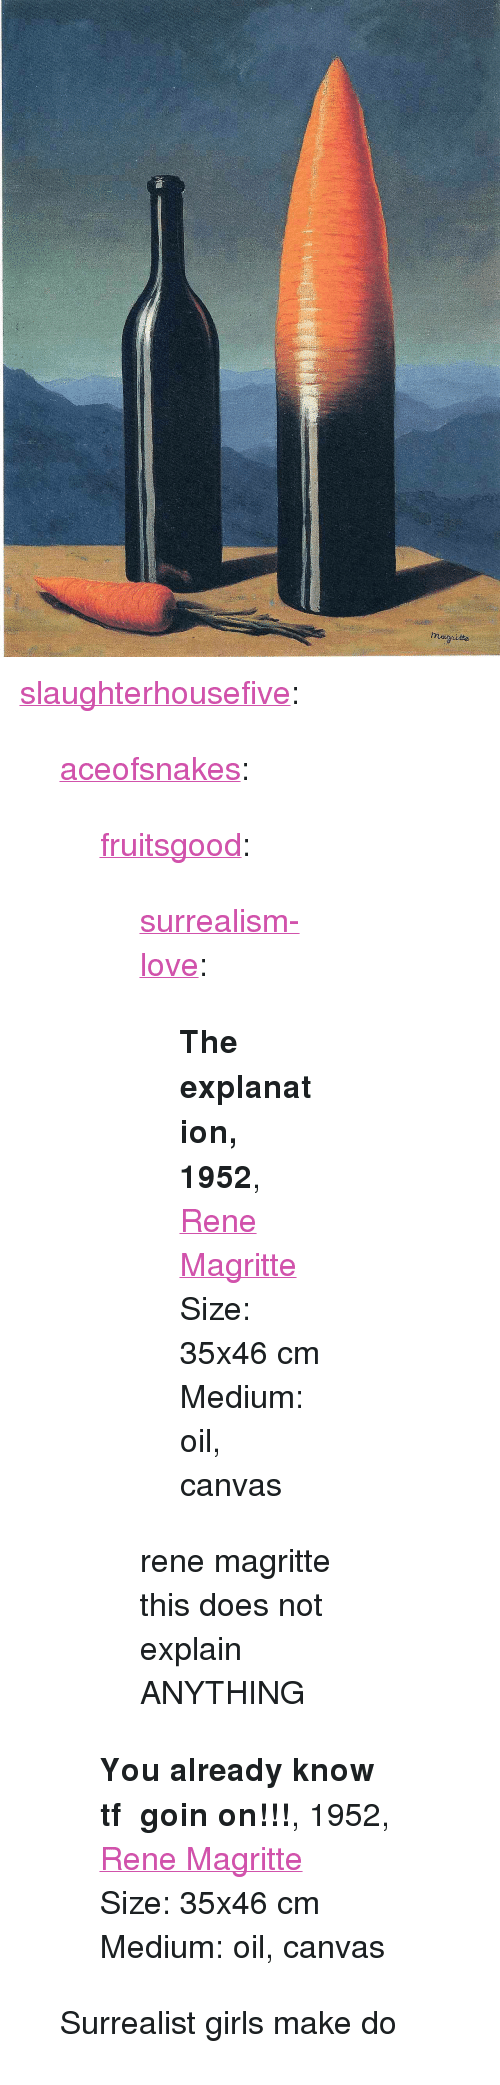 """Girls, Love, and Tumblr: <p><a href=""""http://slaughterhousefive.tumblr.com/post/165061423926/aceofsnakes-fruitsgood-surrealism-love"""" class=""""tumblr_blog"""">slaughterhousefive</a>:</p><blockquote> <p><a href=""""http://aceofsnakes.tumblr.com/post/164863702766/fruitsgood-surrealism-love-the-explanation"""" class=""""tumblr_blog"""">aceofsnakes</a>:</p> <blockquote> <p><a href=""""https://fruitsgood.tumblr.com/post/164705438697/surrealism-love-the-explanation-1952-rene"""" class=""""tumblr_blog"""">fruitsgood</a>:</p> <blockquote> <p><a href=""""https://surrealism-love.tumblr.com/post/164705258000/the-explanation-1952-rene-magrittesize-35x46-cm"""" class=""""tumblr_blog"""">surrealism-love</a>:</p> <blockquote> <p><strong>The explanation, 1952</strong>, <a href=""""http://artist-magritte.tumblr.com"""">Rene Magritte</a></p>Size: 35x46 cm<br/>Medium: oil, canvas</blockquote> <p>rene magritte this does not explain ANYTHING </p> </blockquote> <p><b>You already know tf goin on!!!</b>, 1952, <a href=""""http://artist-magritte.tumblr.com"""">Rene Magritte</a></p> <p>Size: 35x46 cm</p> <p>Medium: oil, canvas  </p> </blockquote>  <p>Surrealist girls make do</p> </blockquote>"""